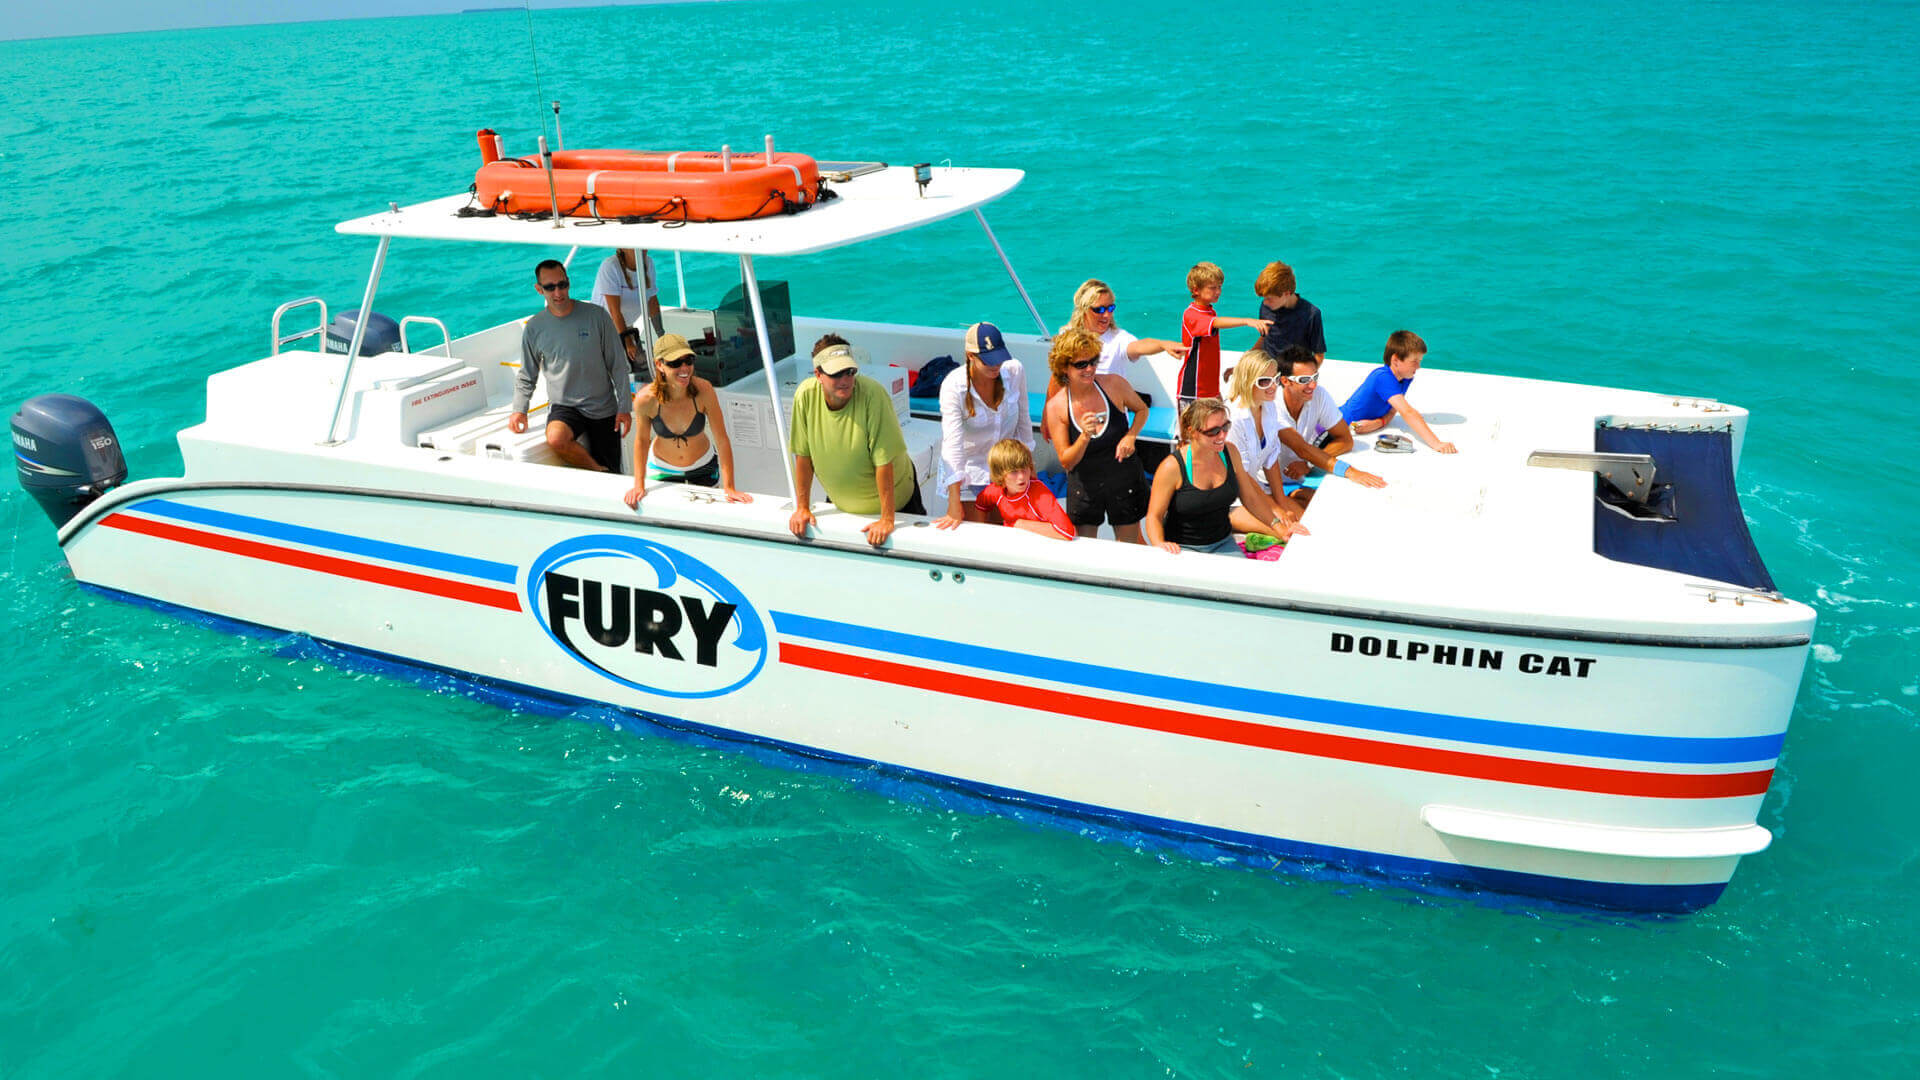 Image of Fury Dolphin Cat boat